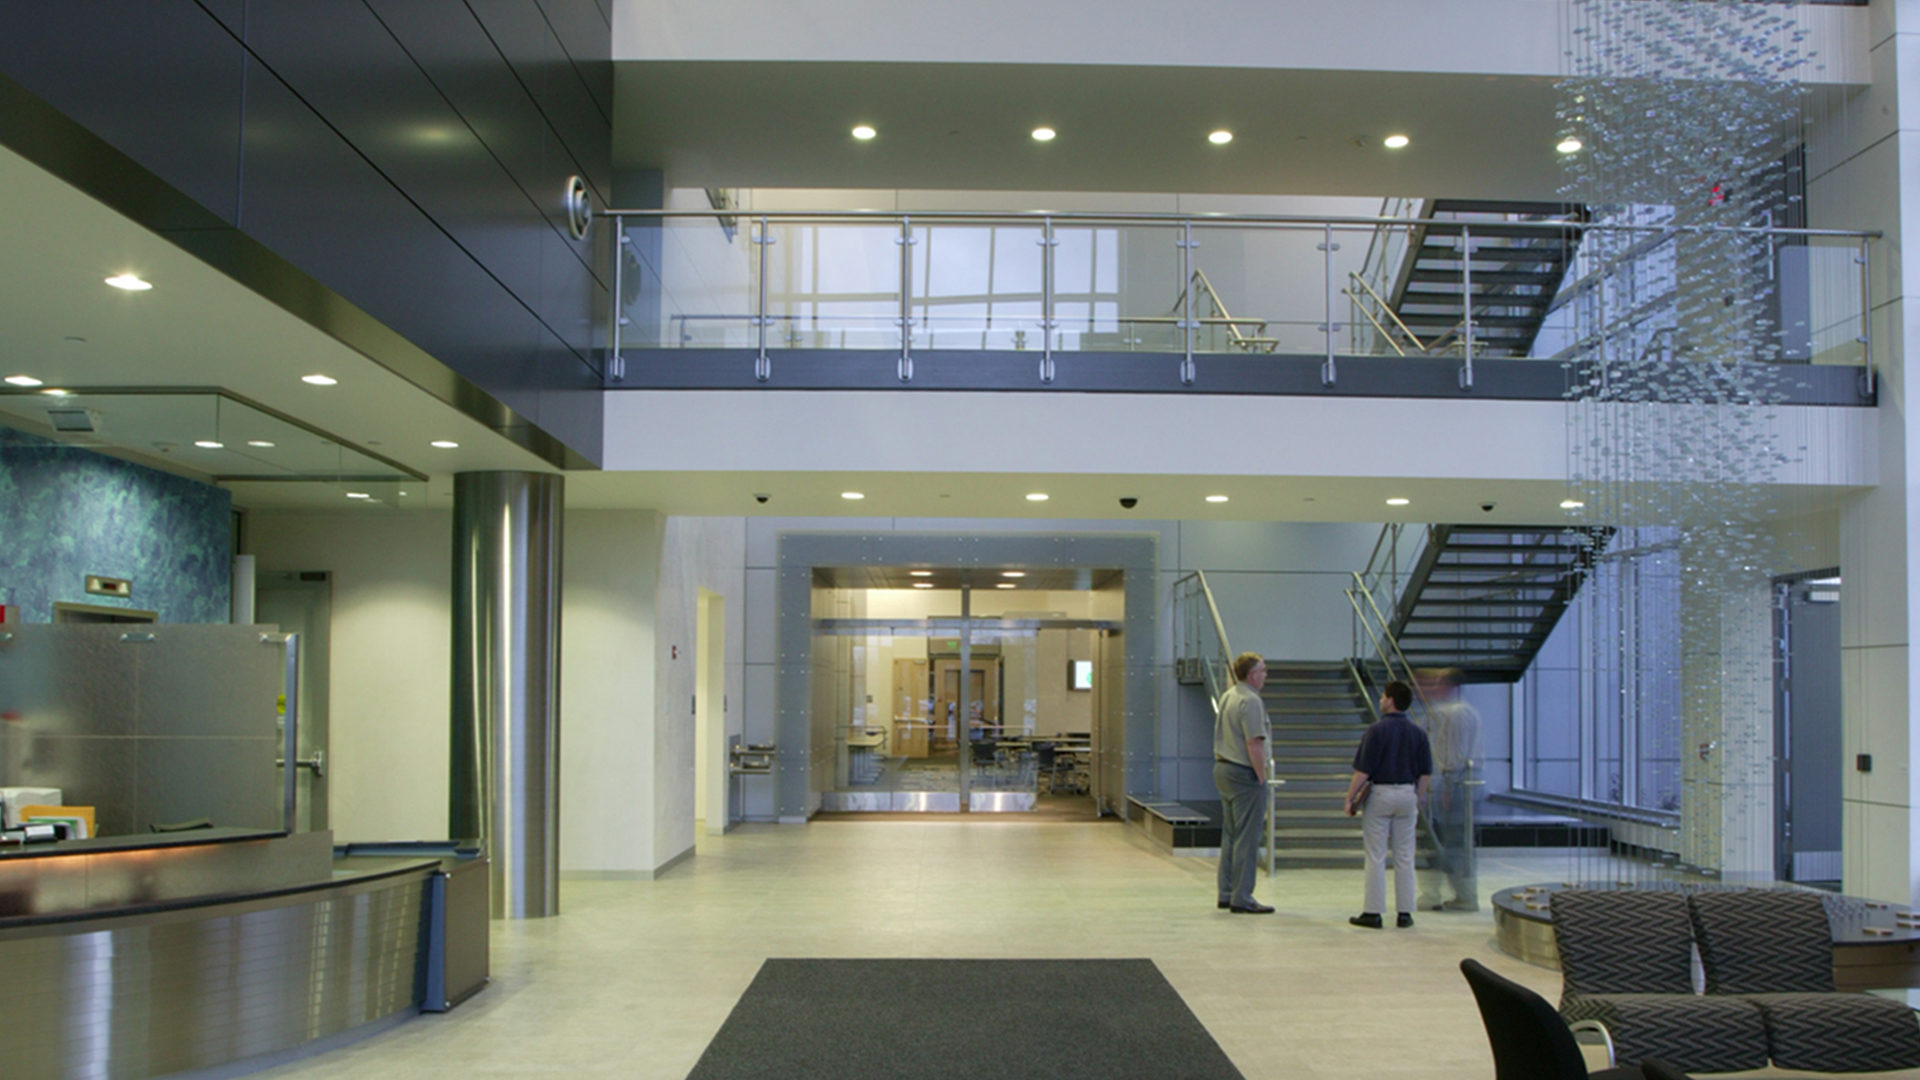 Boston Scientific Weaver Lake Phase III Expansion High Tech Manufacturing Interior Lobby Staircase and Reception Desk